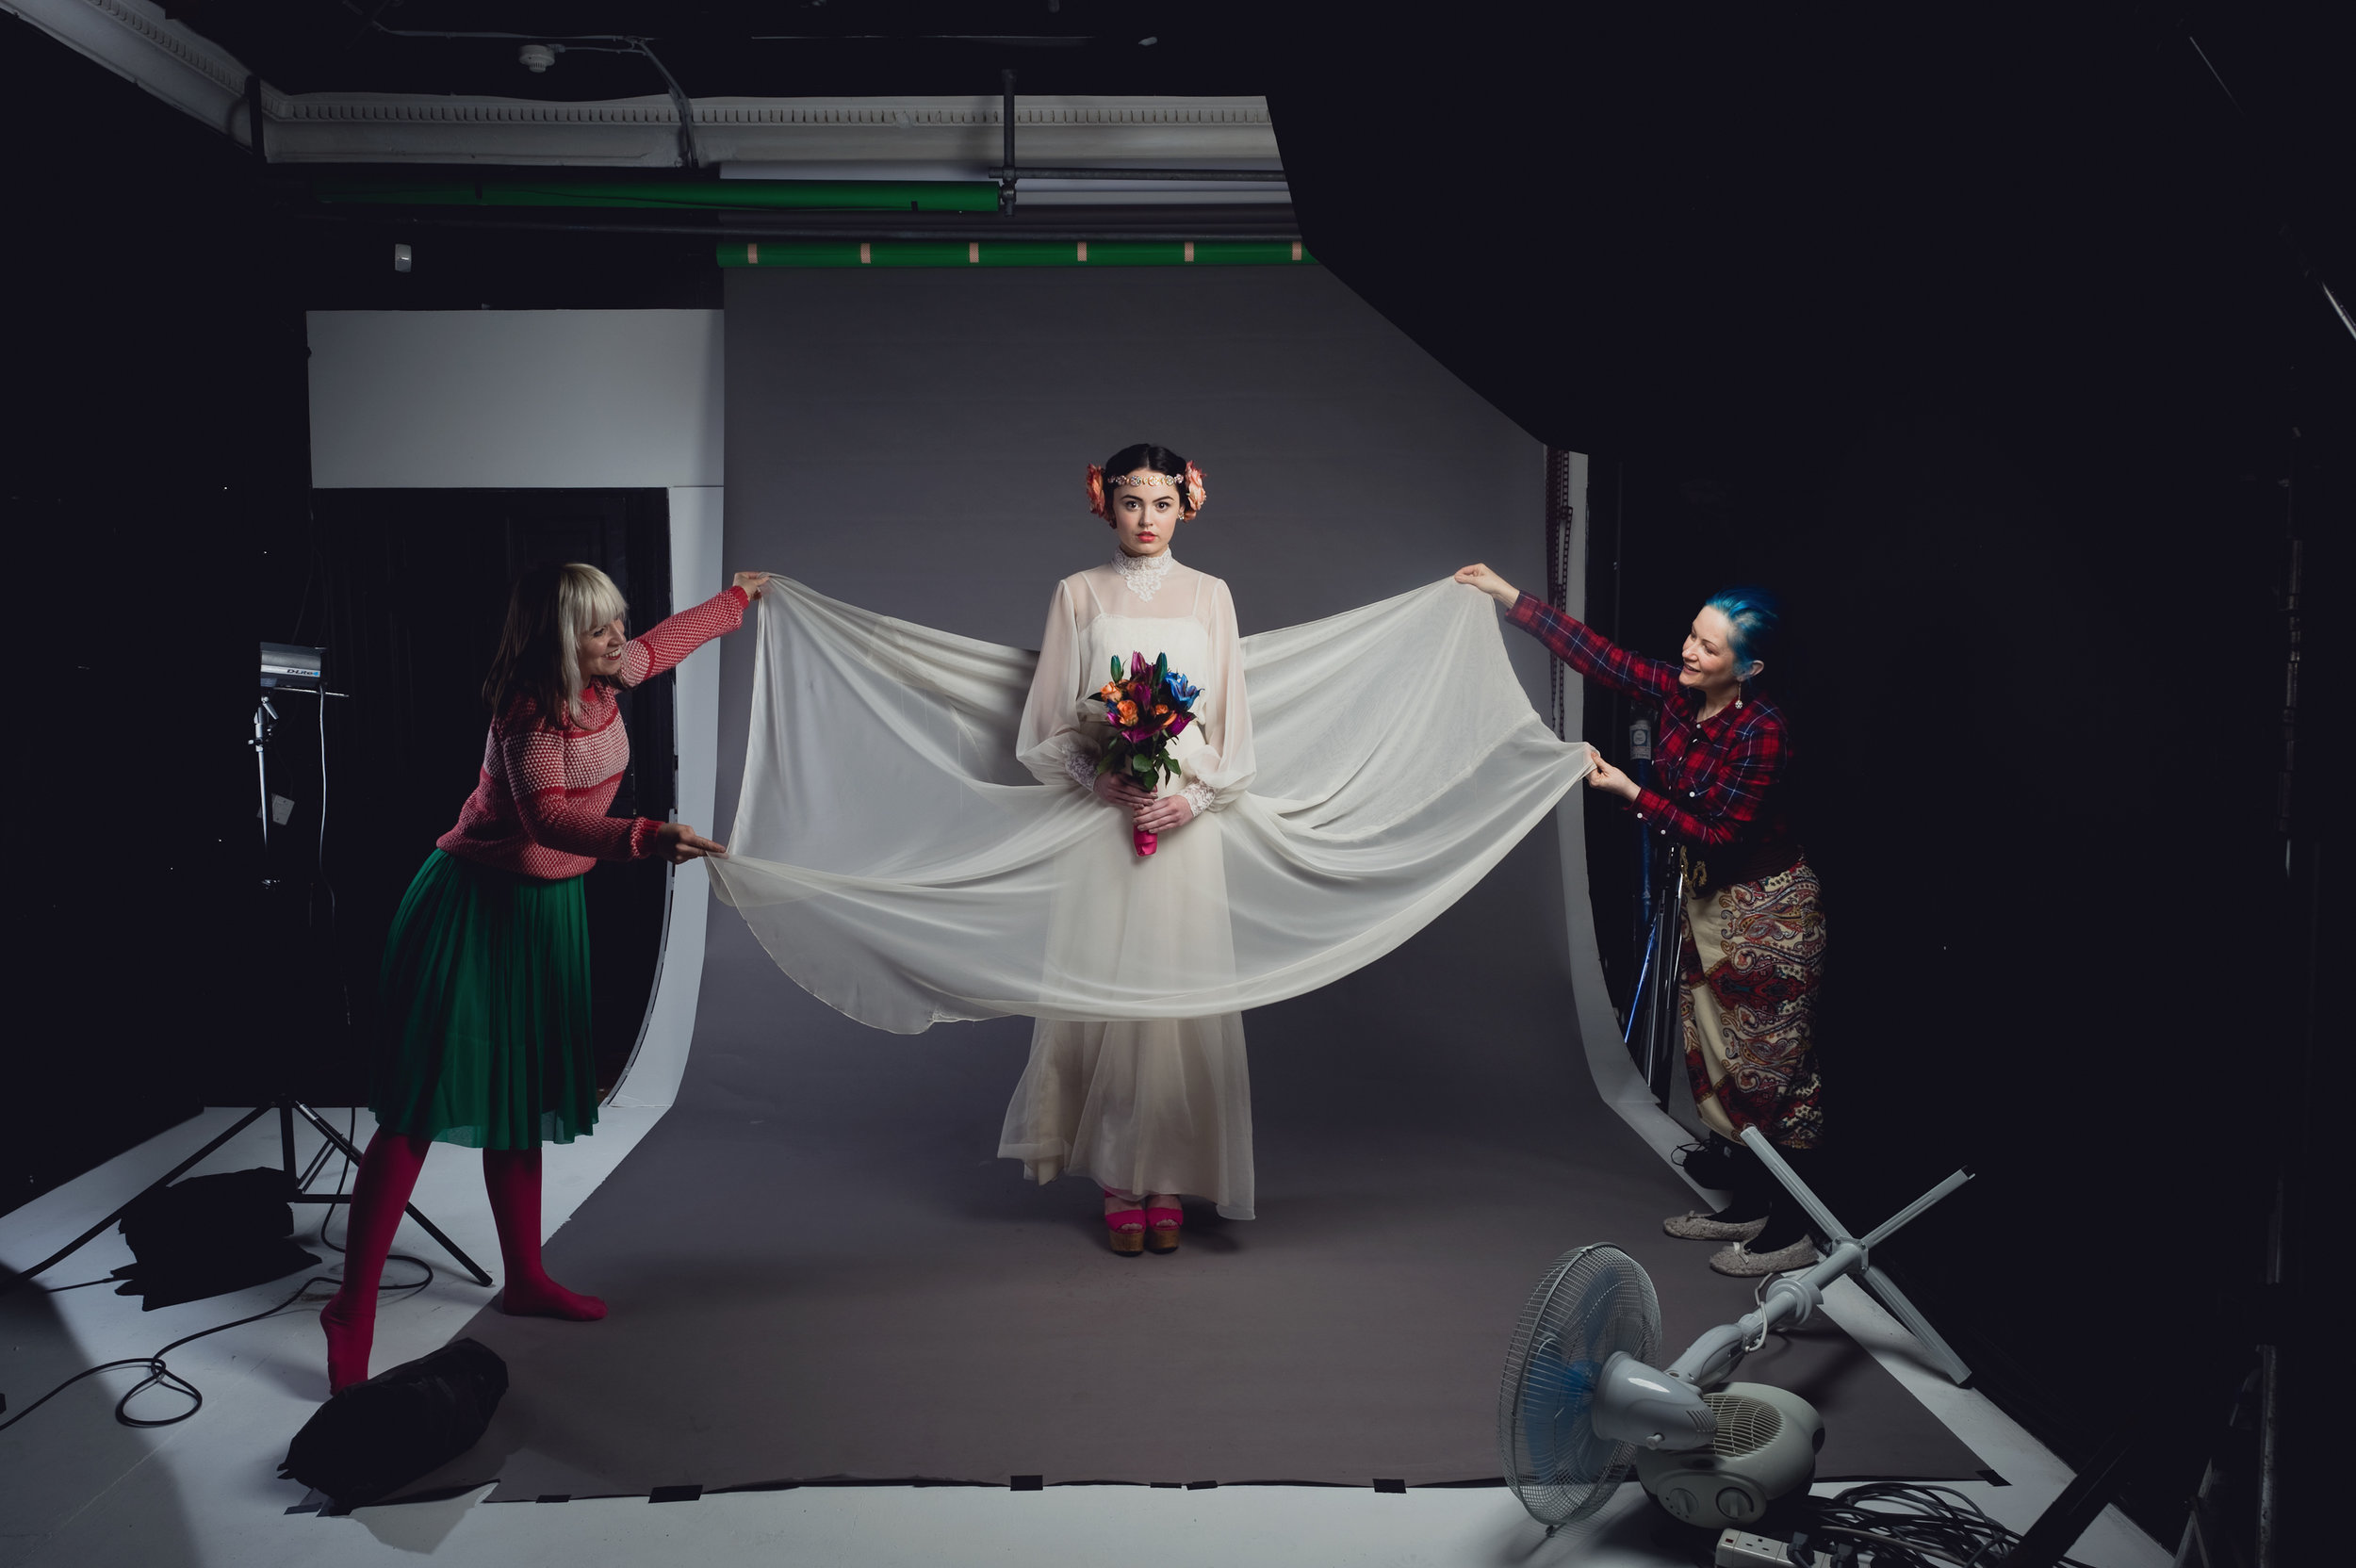 Behind the scenes image by White Tea Photography